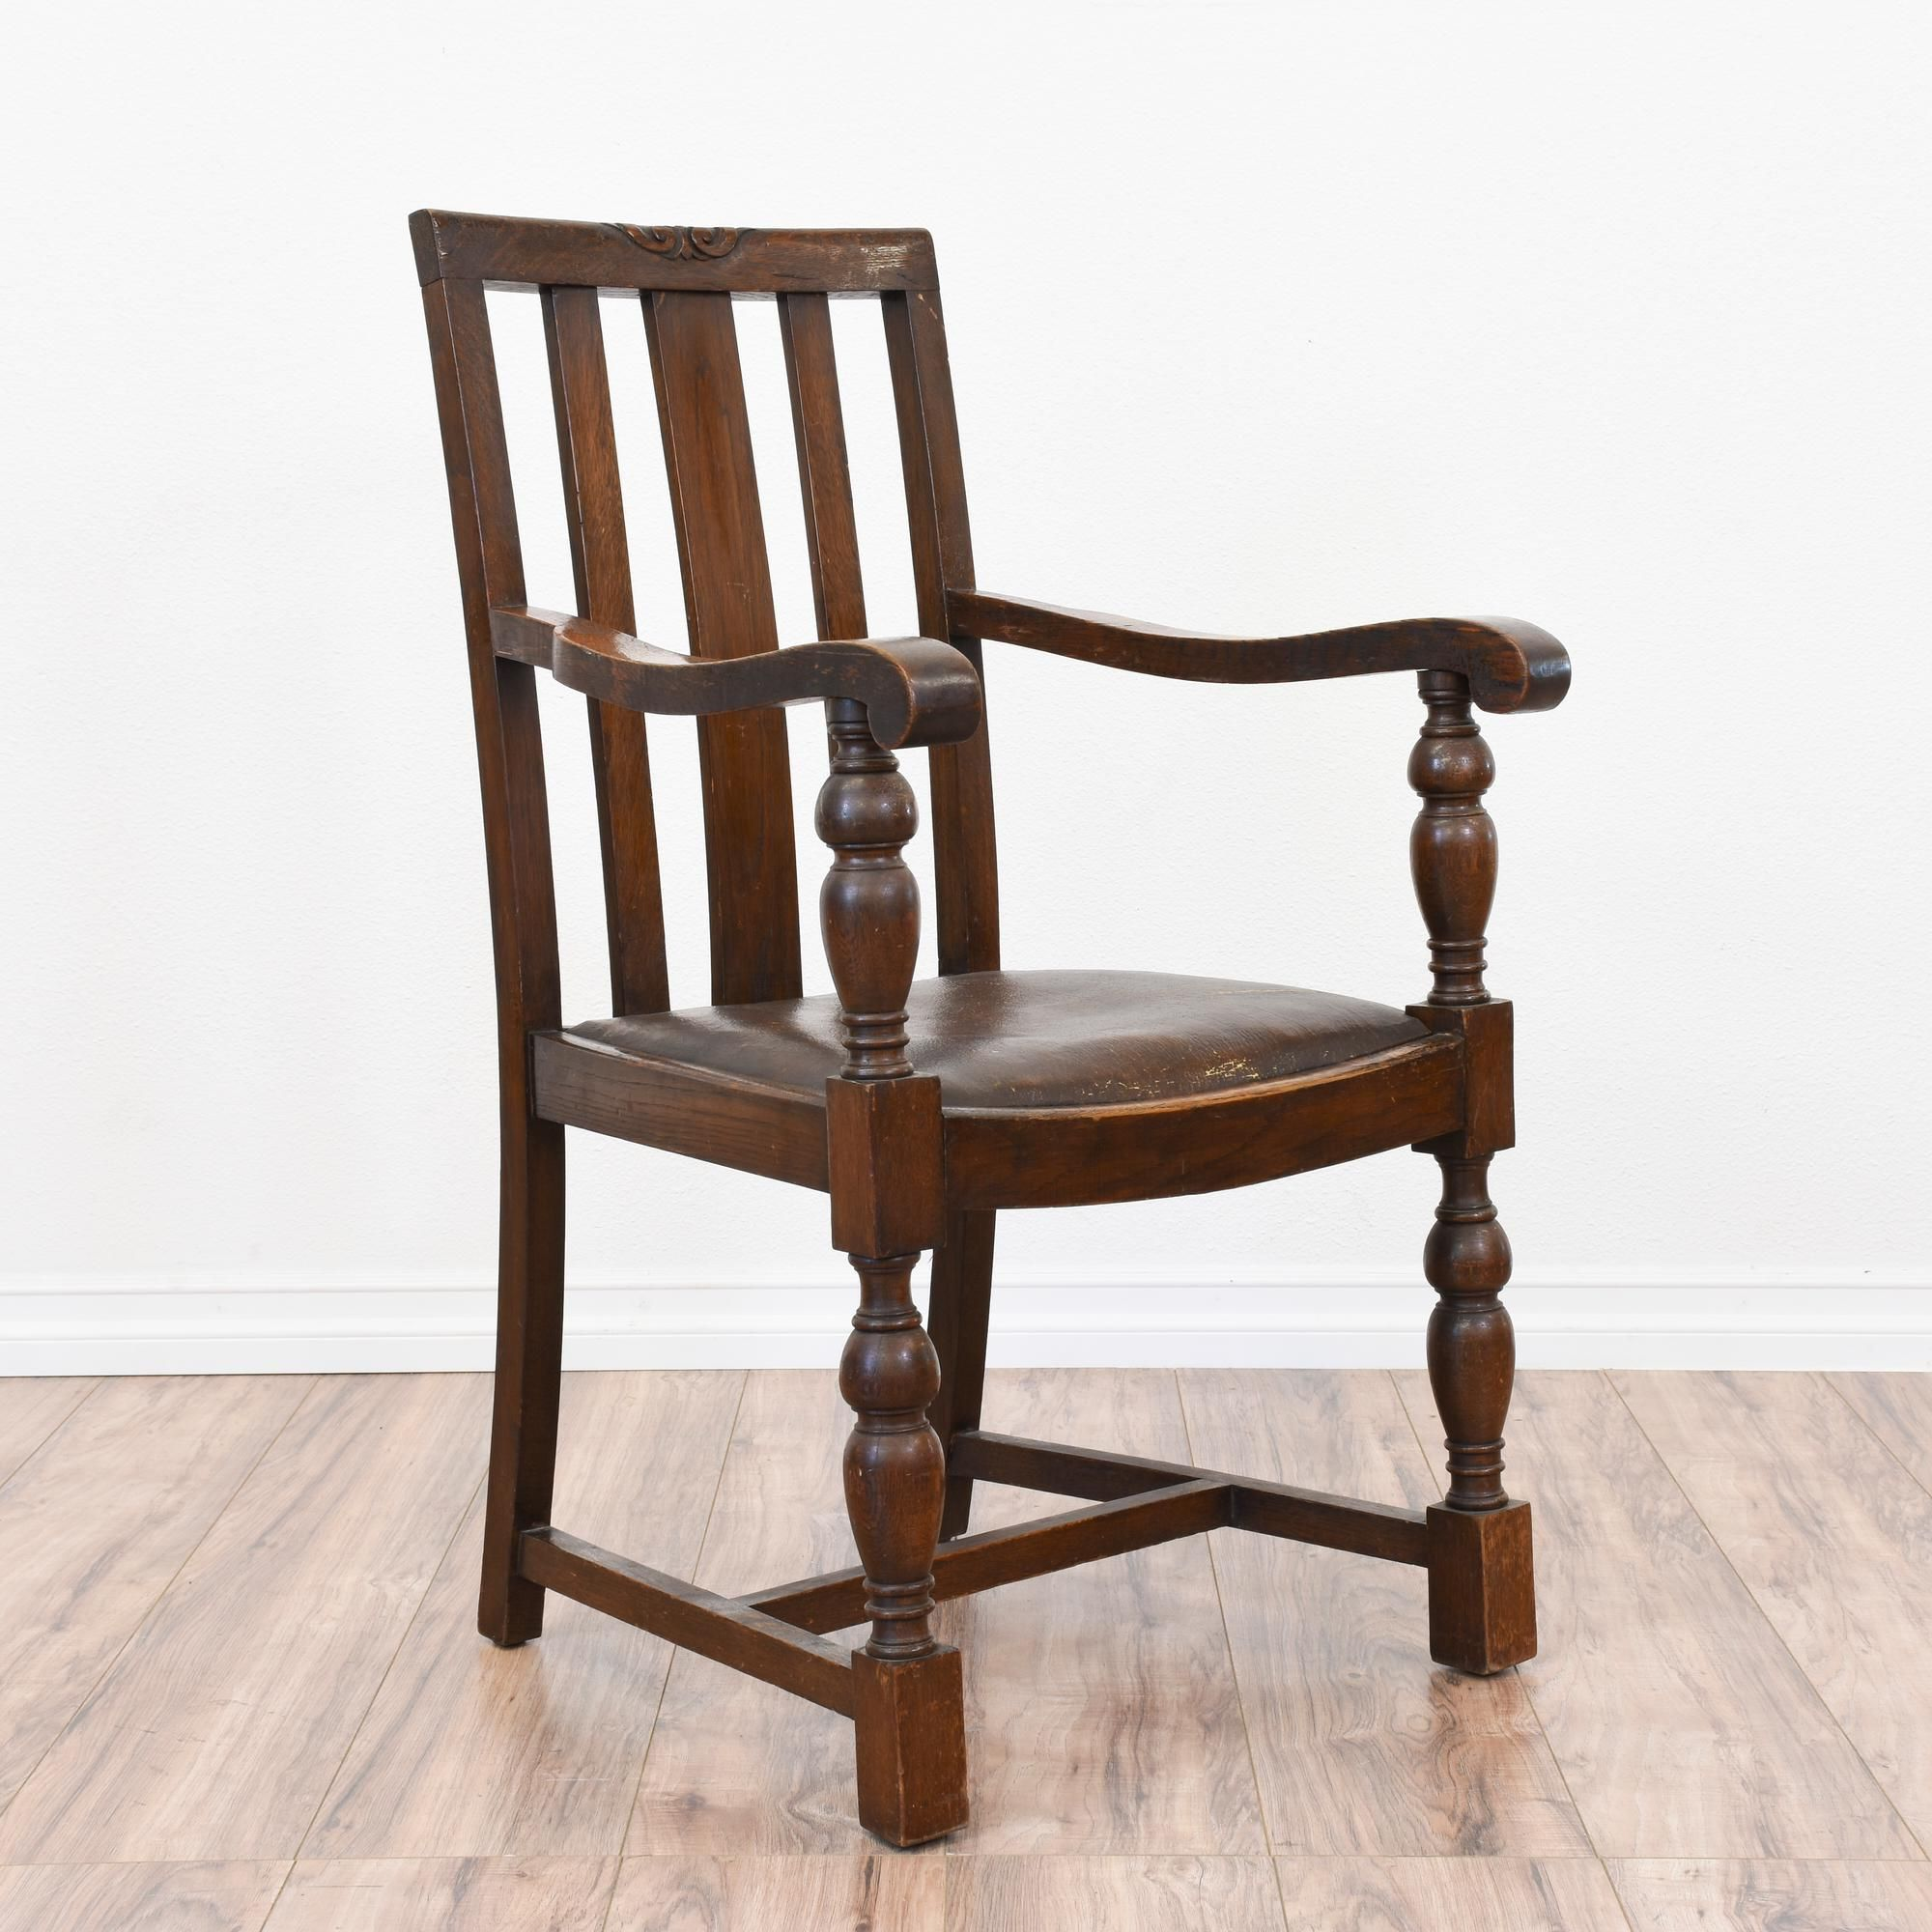 Rustic Antique Spanish Revival Chair